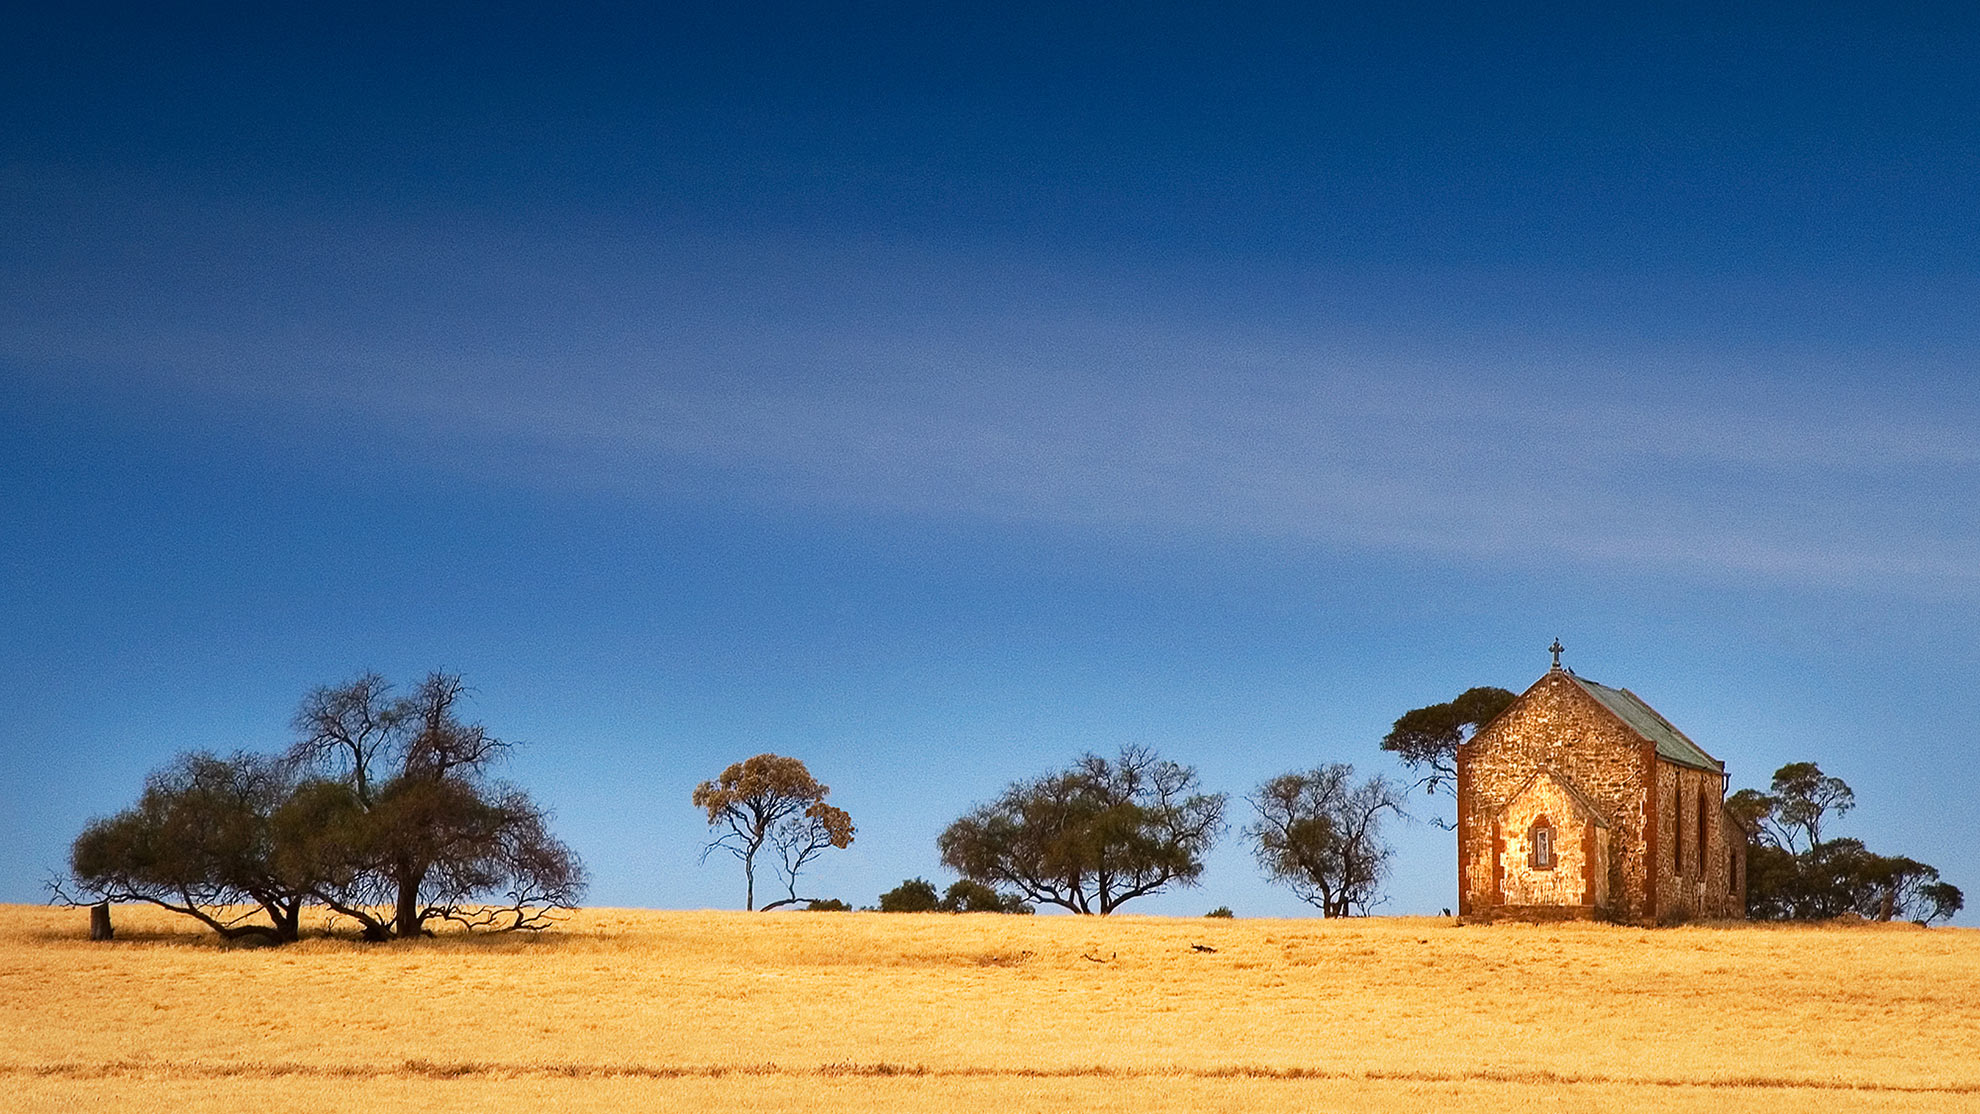 A Catholic Chapel in Outback Australia